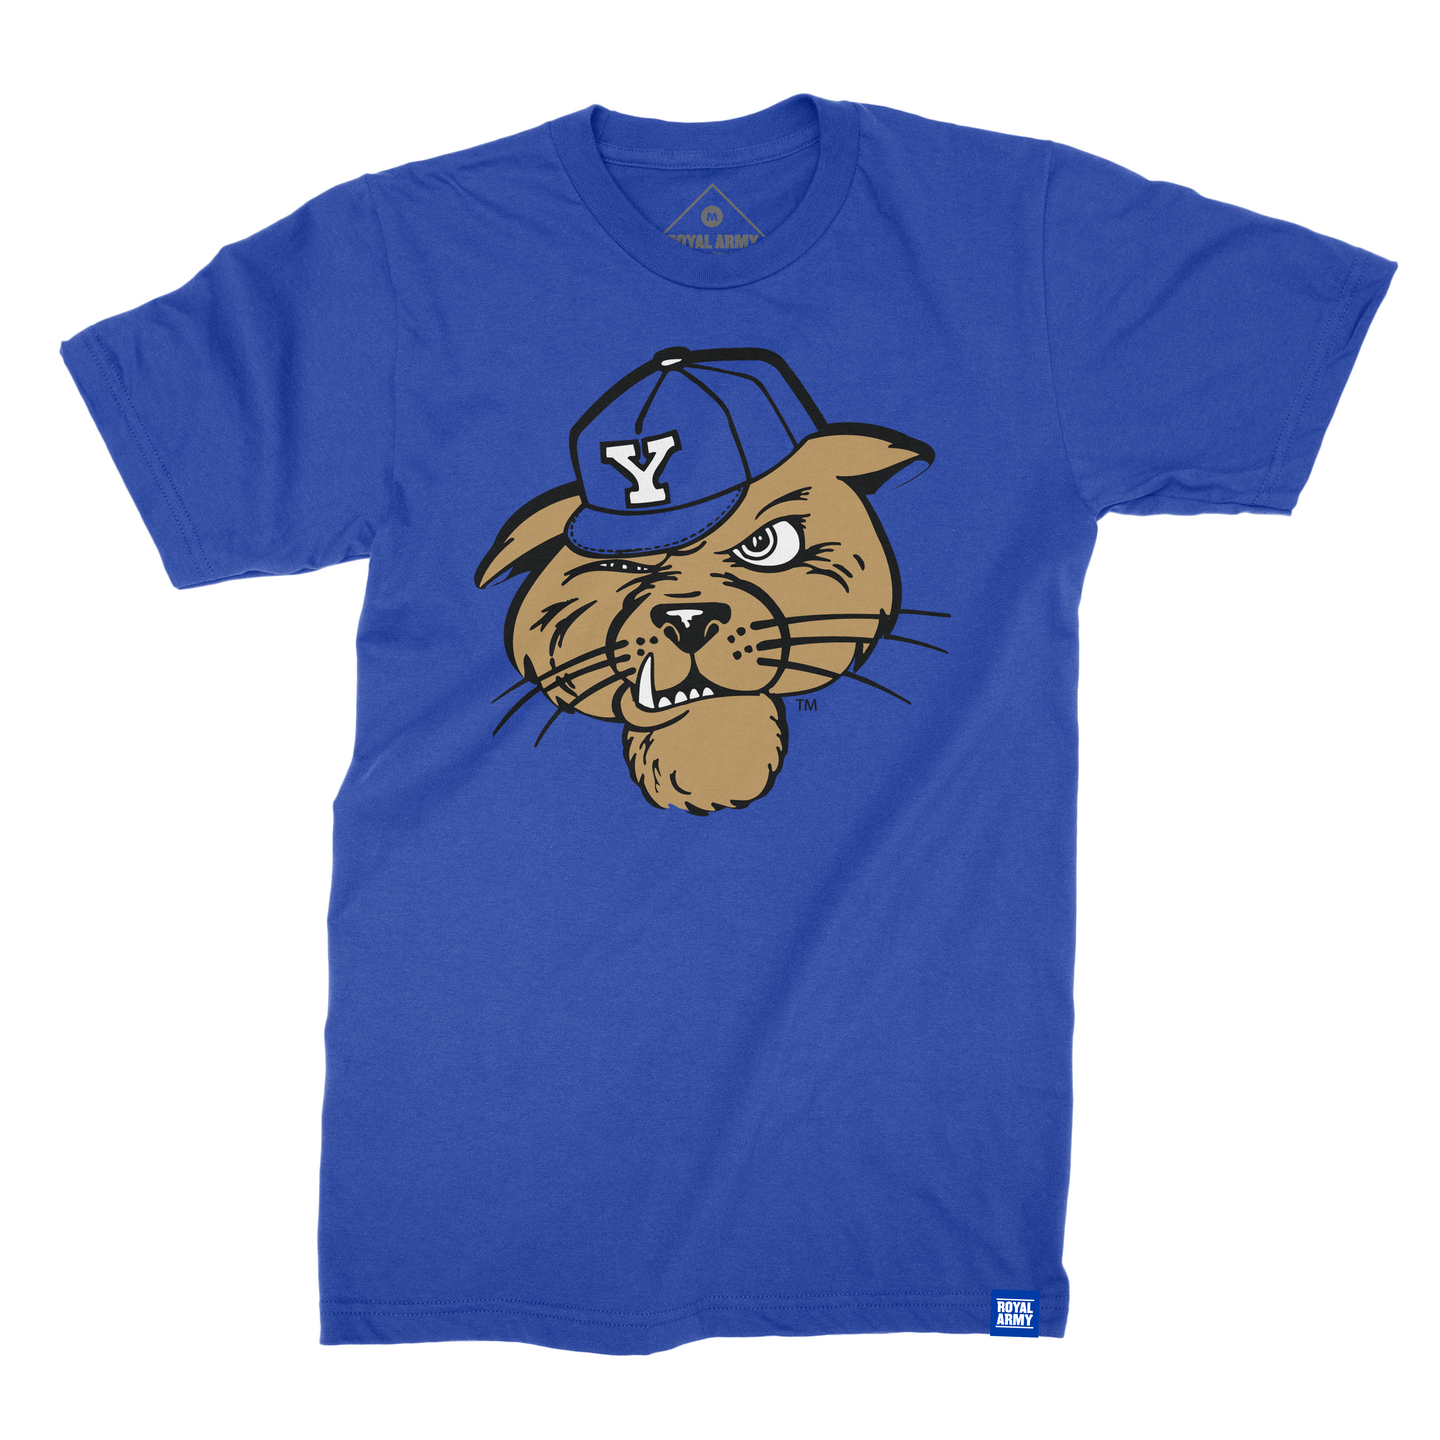 Kids Vintage Cougar BYU T-Shirt - The Royal Collection